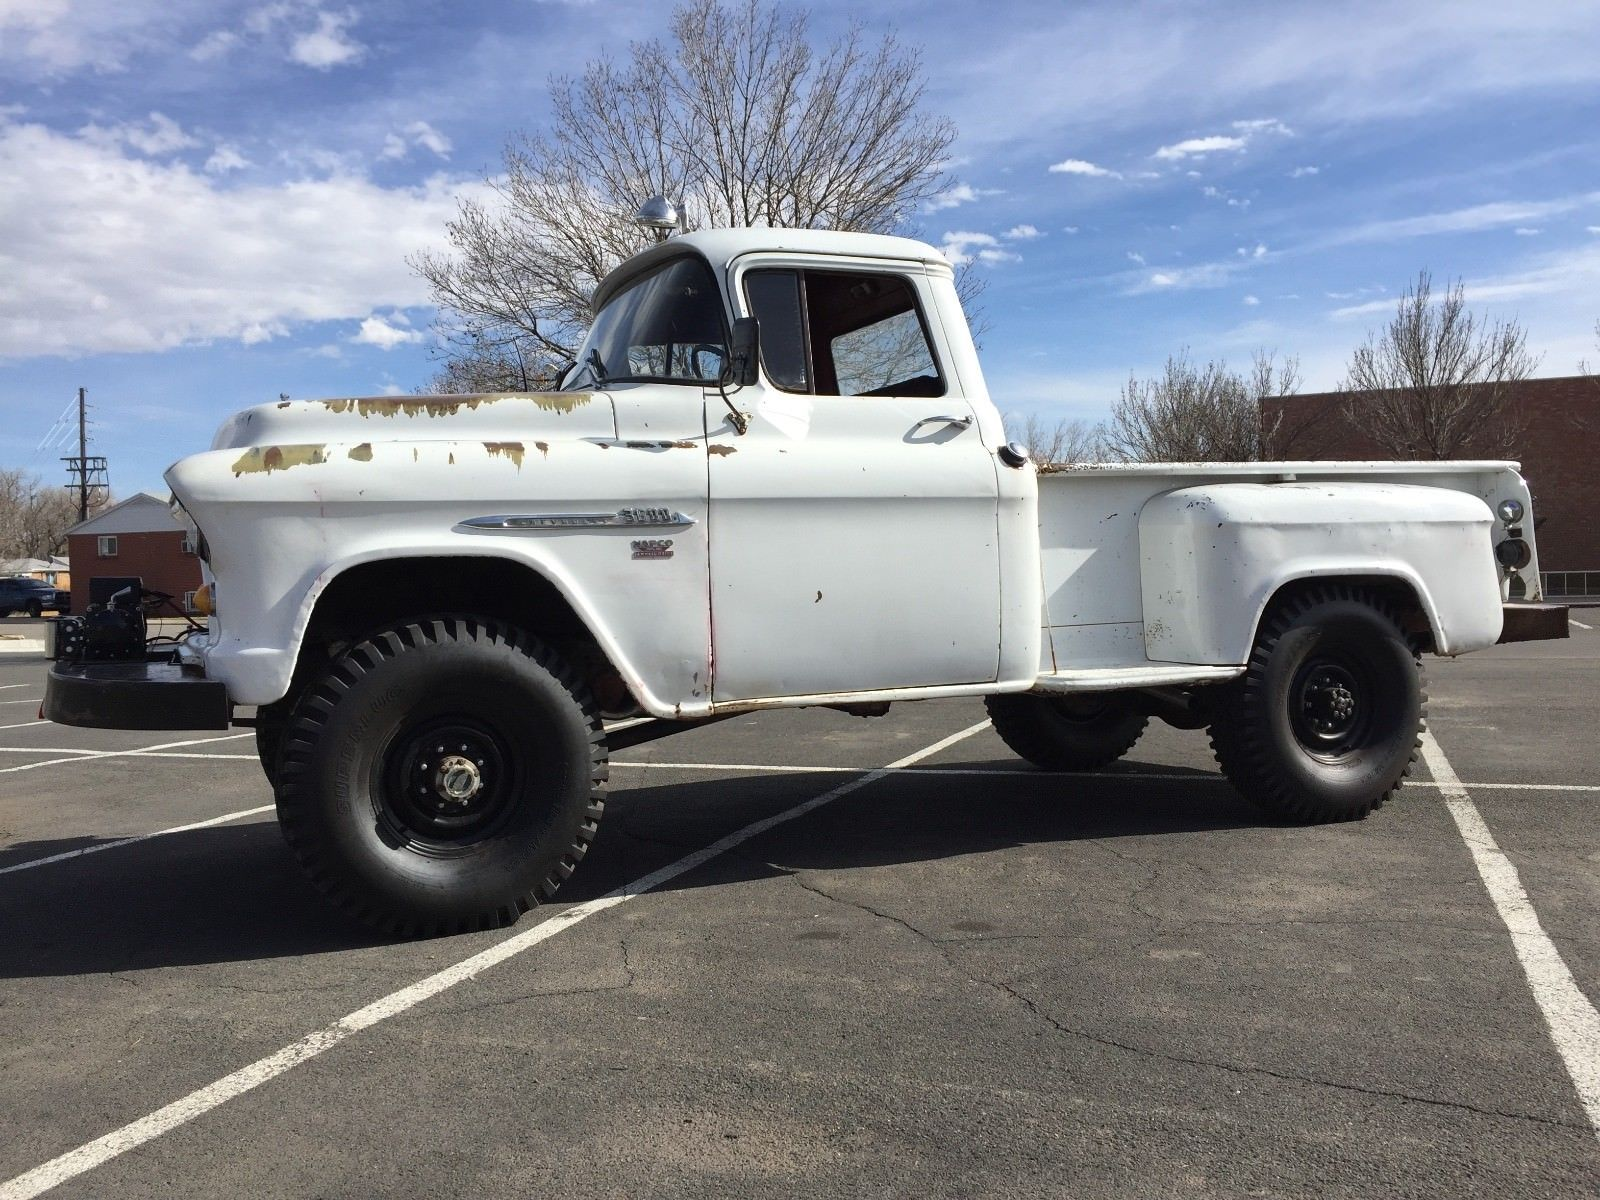 This 3/4 Ton 1955 Chevy Truck Has A 283, NAPCO Four Wheel Drive, and A Timeless Look